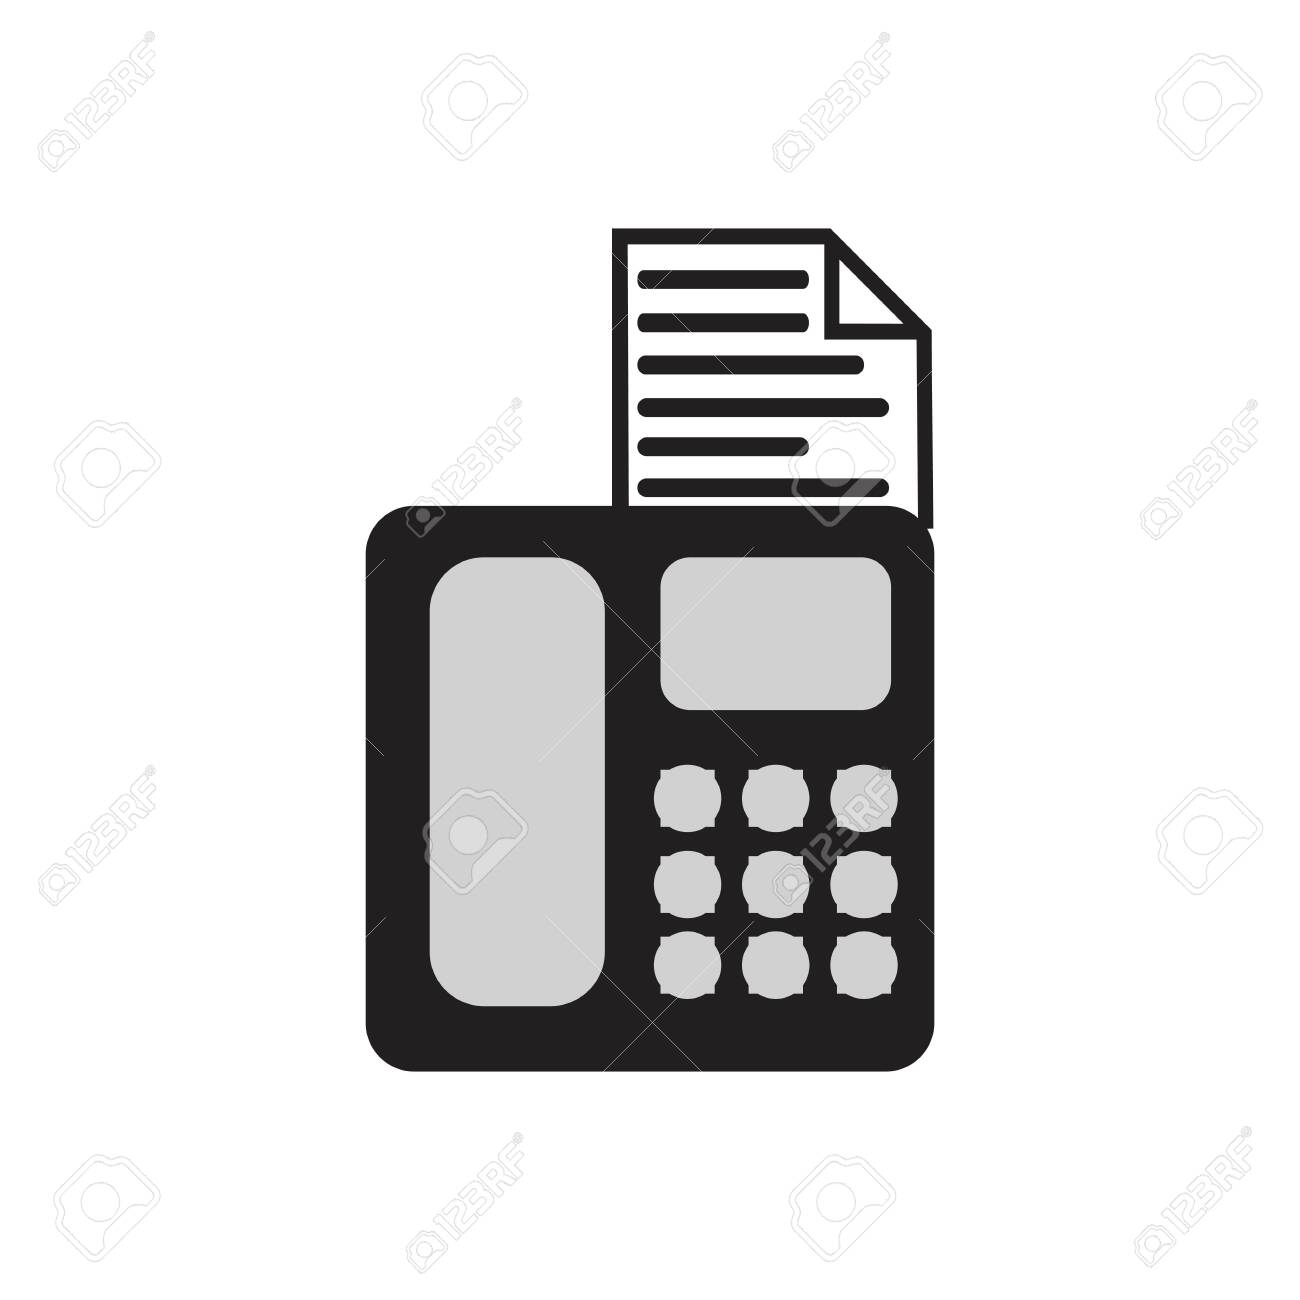 fax machine logo template vector icon design royalty free cliparts vectors and stock illustration image 134130504 123rf com